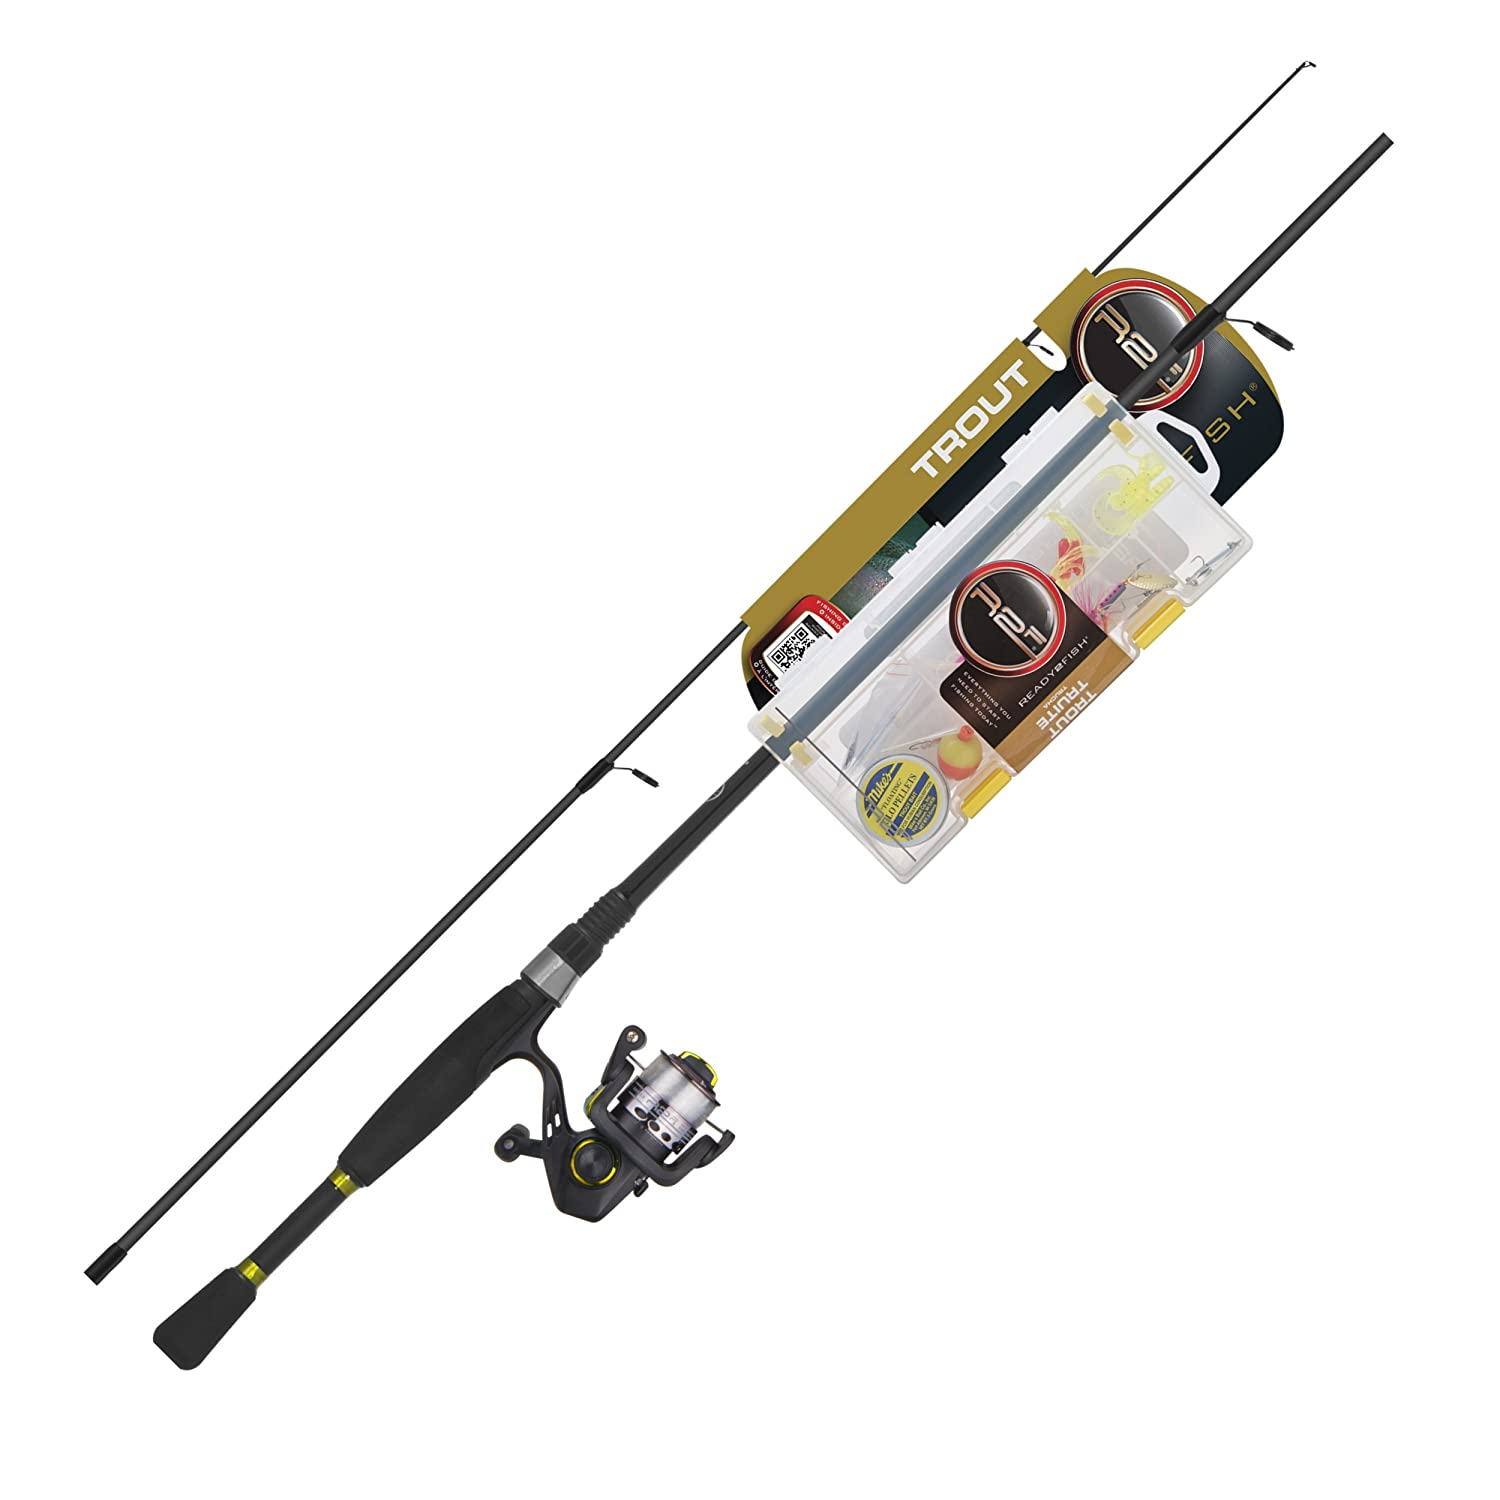 2c611eeb059 Amazon.com : Ready 2 Fish Trout Spin Combo with Kit, Ultra Light : Spinning  Rod And Reel Combos : Sports & Outdoors